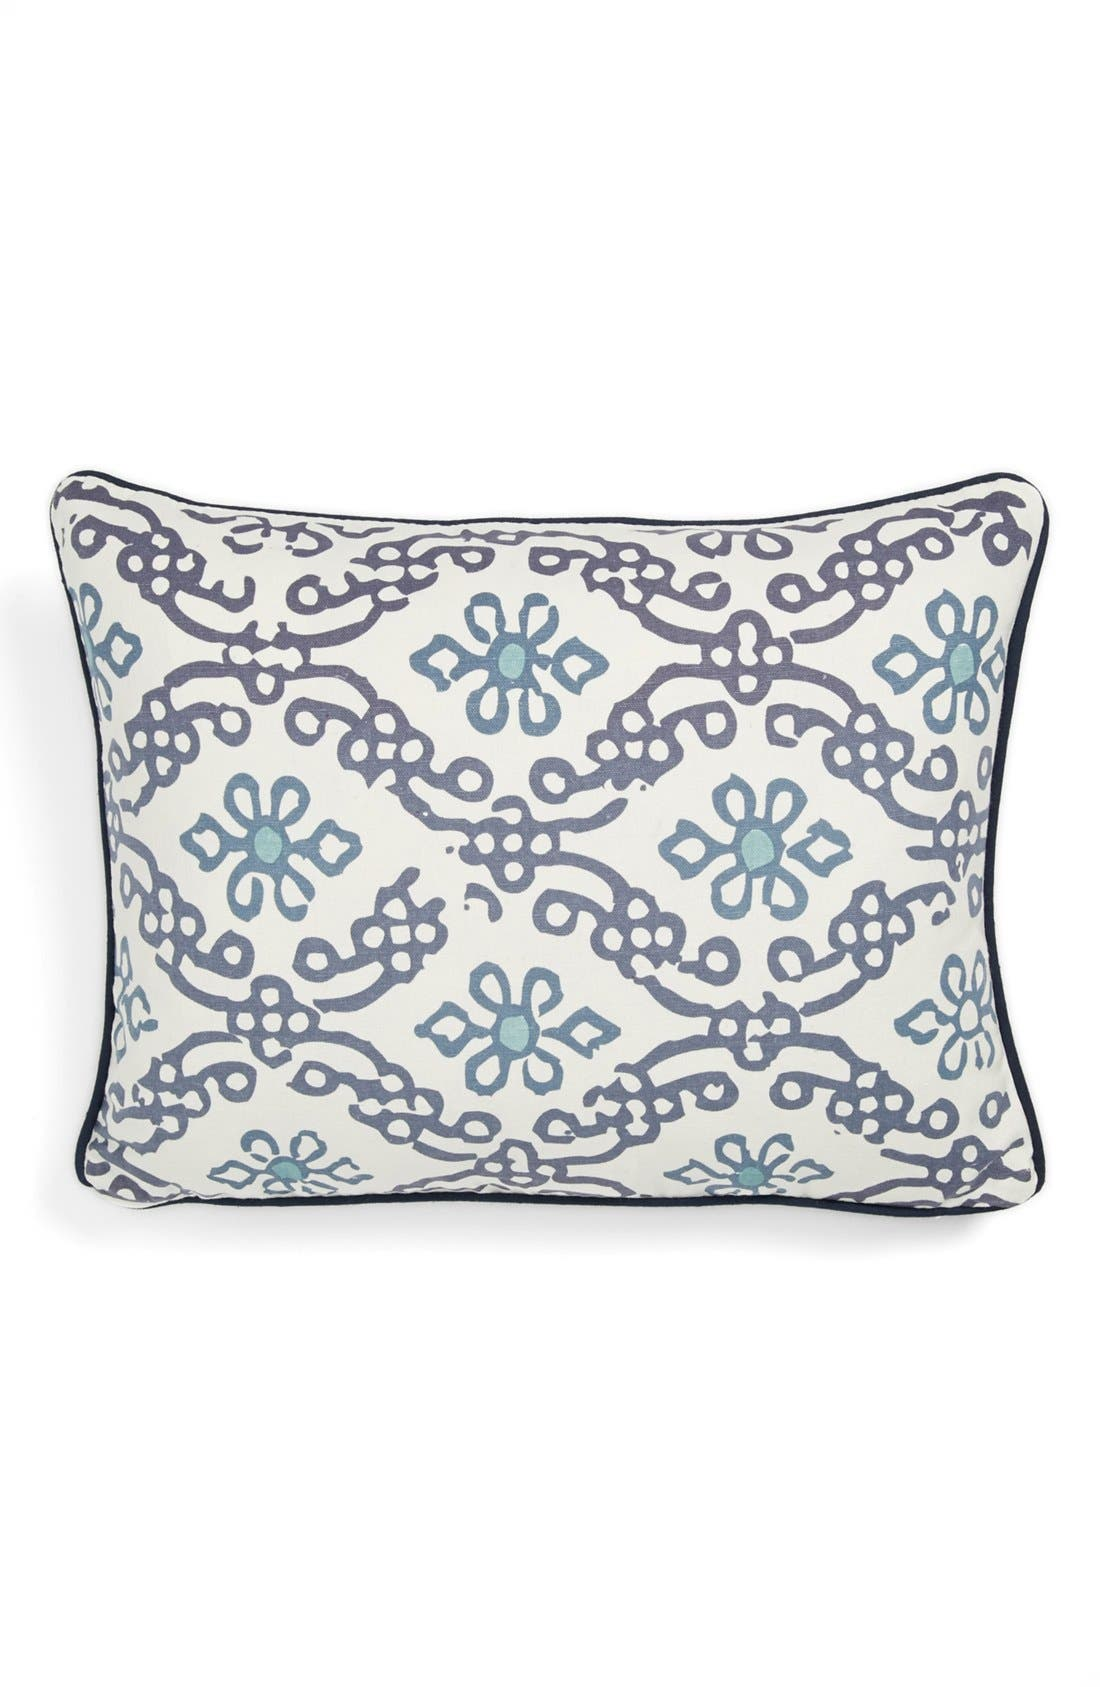 Alternate Image 1 Selected - Levtex Medallion Pillow